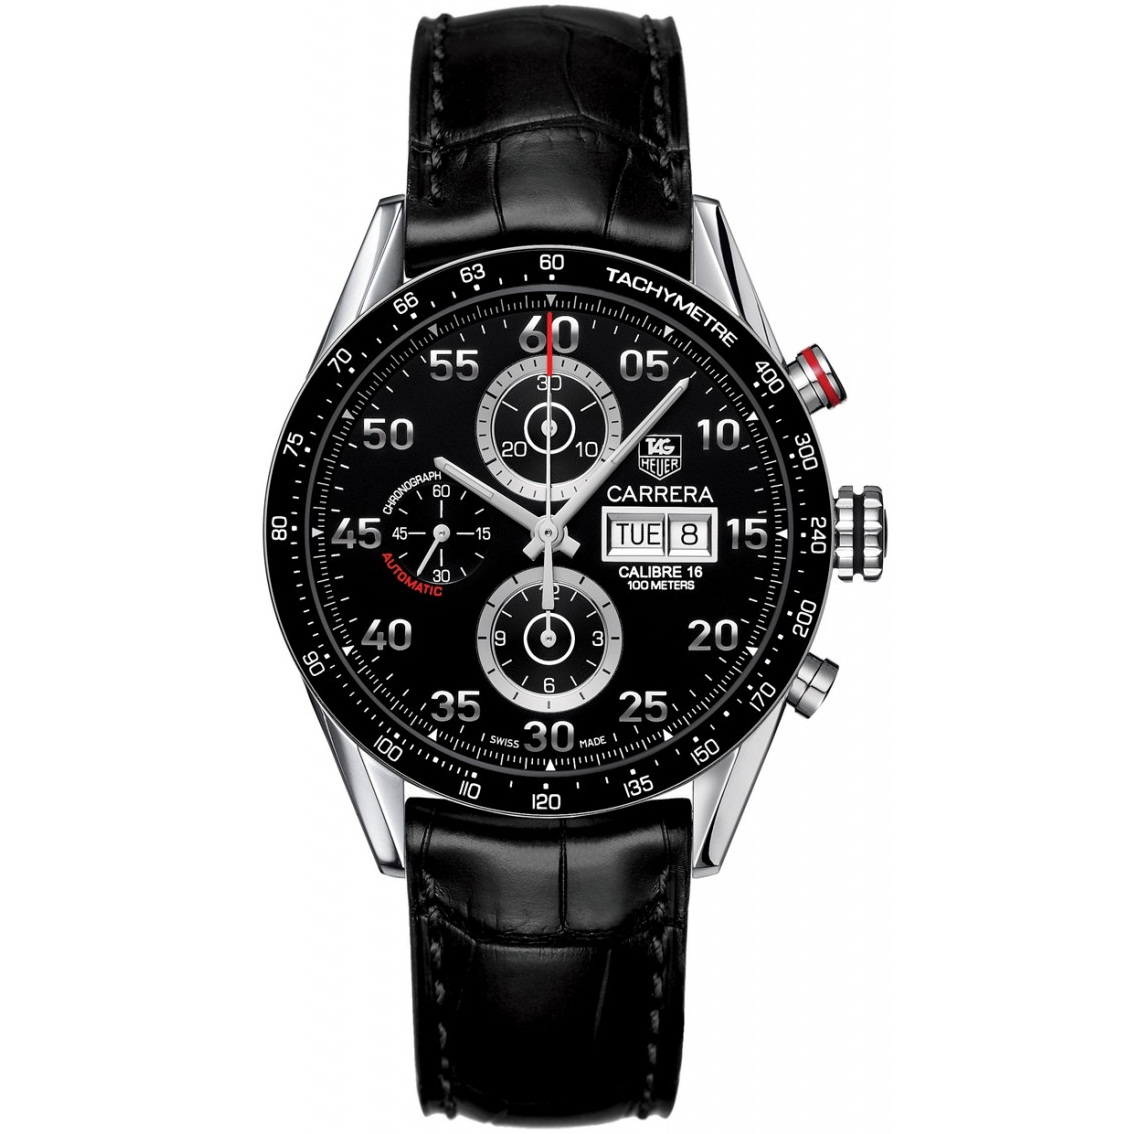 defd6cf0e960 TAG HEUER GRAND CARRERA CALIBRE 17 CHRONOGRAPH WATCH BLACK WITH LEATHER  BLACK BELT. SKU  181. Roll ...